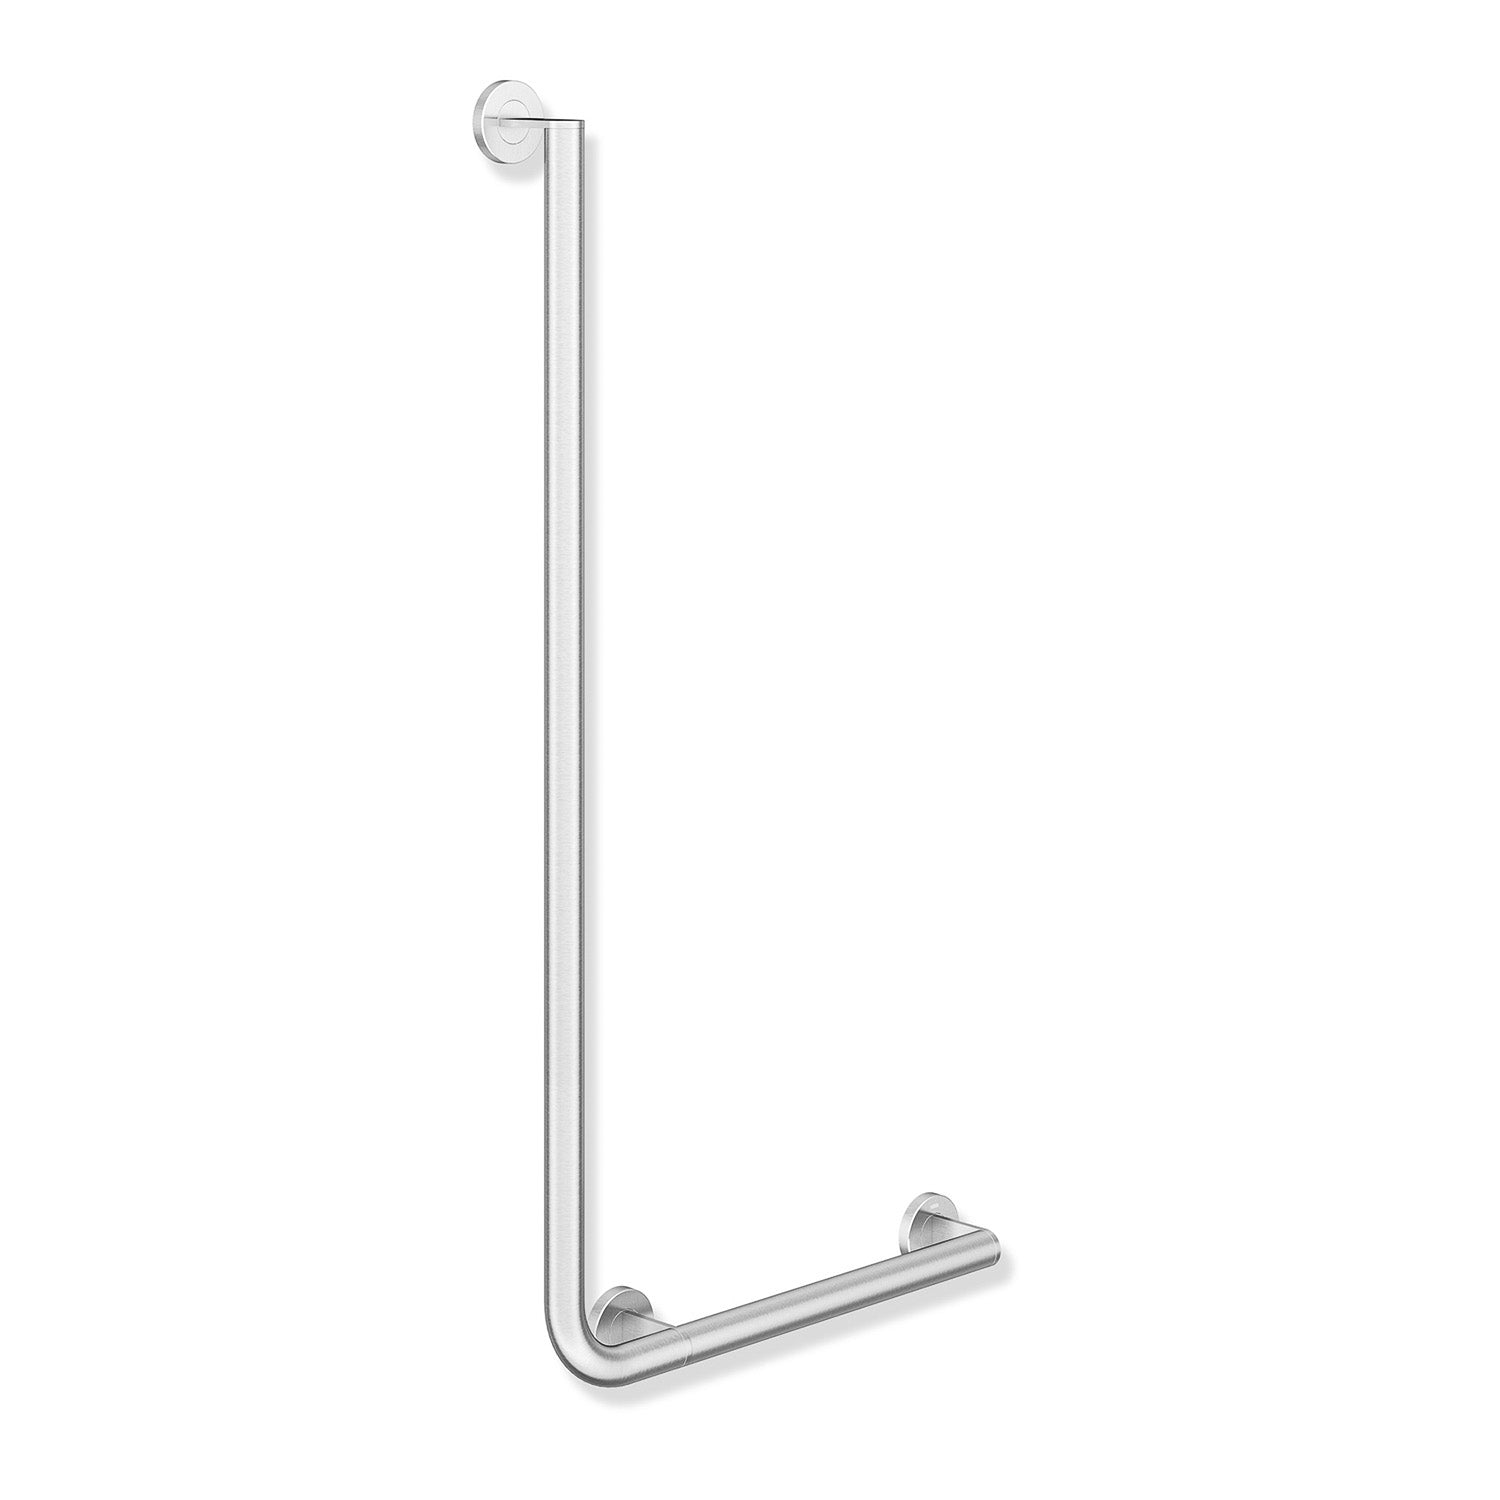 1000x500mm Right Handed Freestyle L Shaped Grab Rail with a satin steel finish on a white background